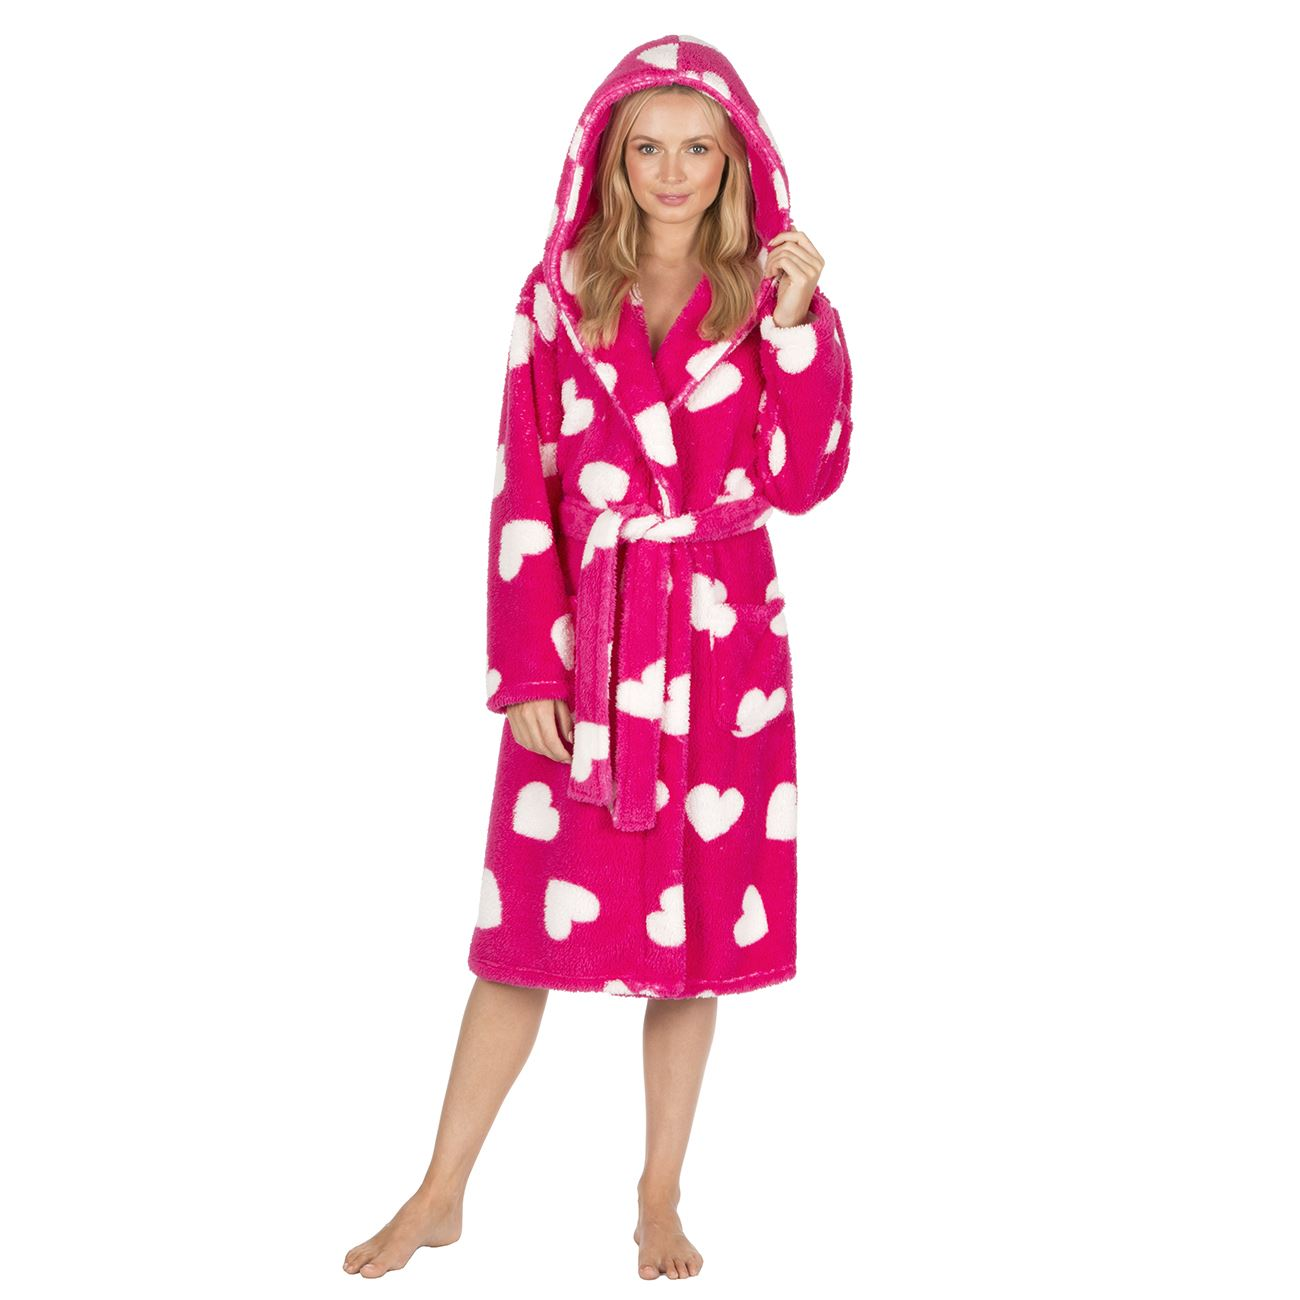 Ladies Hearts Hooded Robe Dressing Gown Soft Fluffy Nightwear Size 8 ...